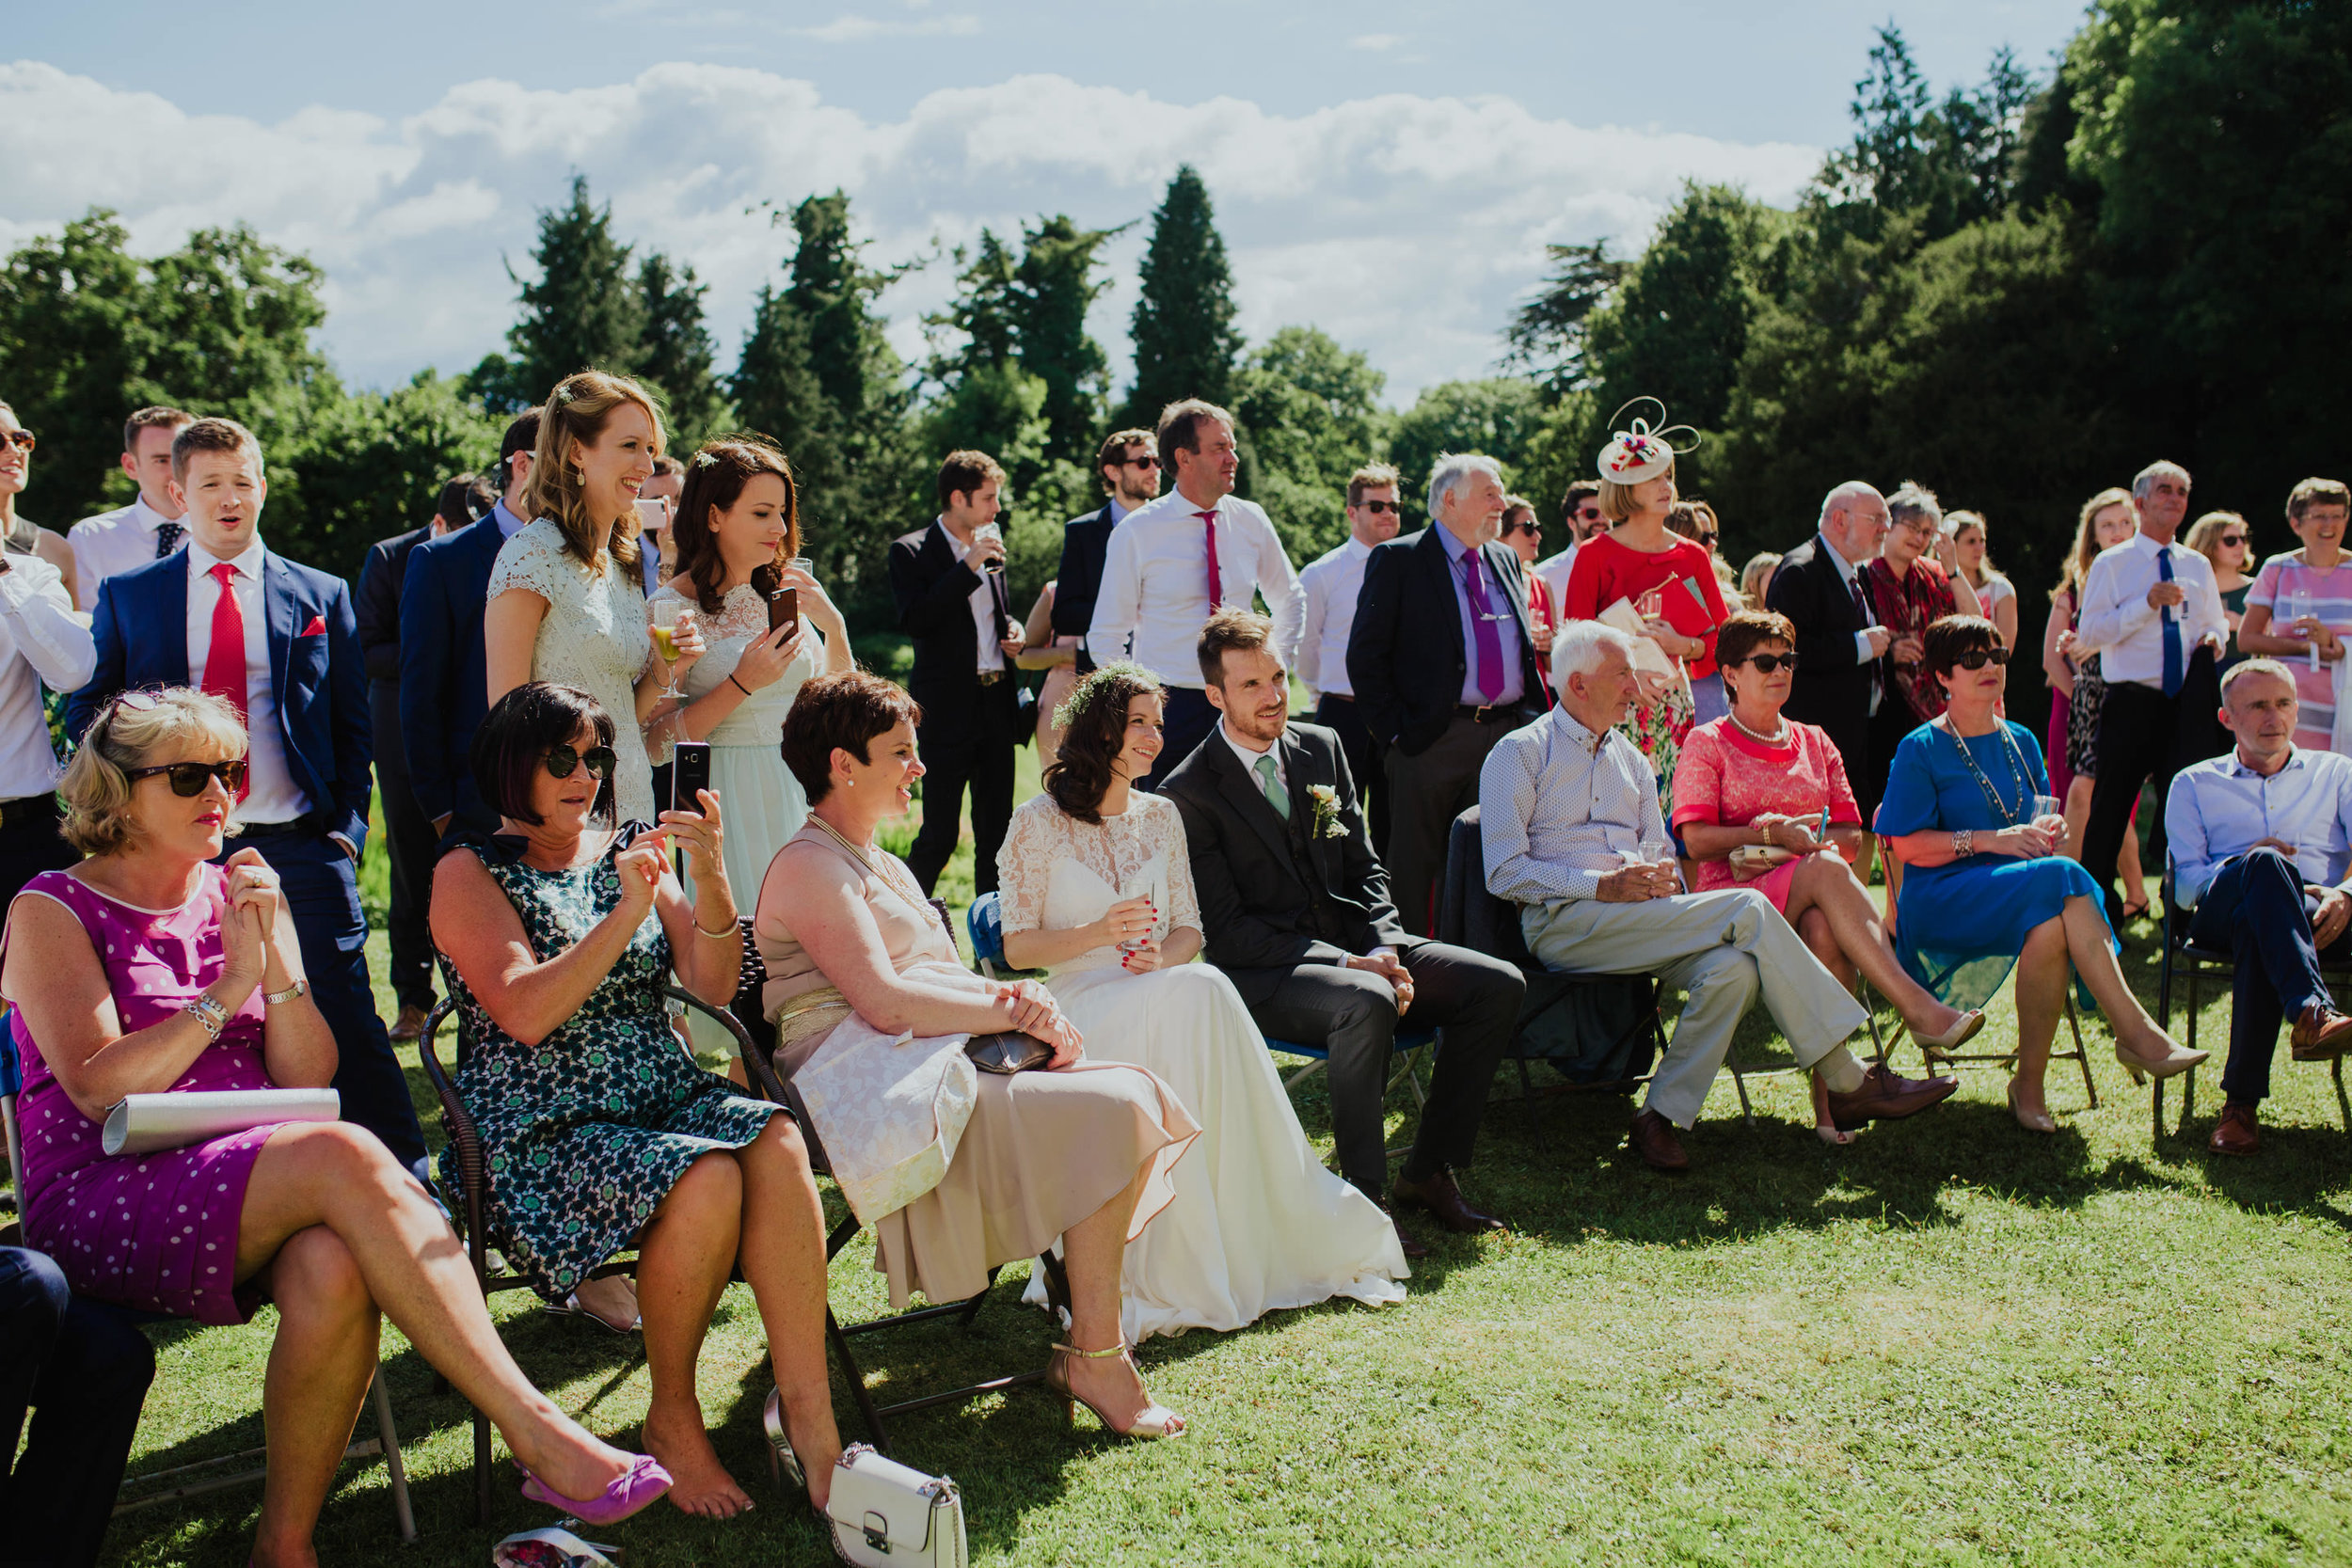 a+s_temple_house_sligo_wedding_livia_figueiredo_956.jpg